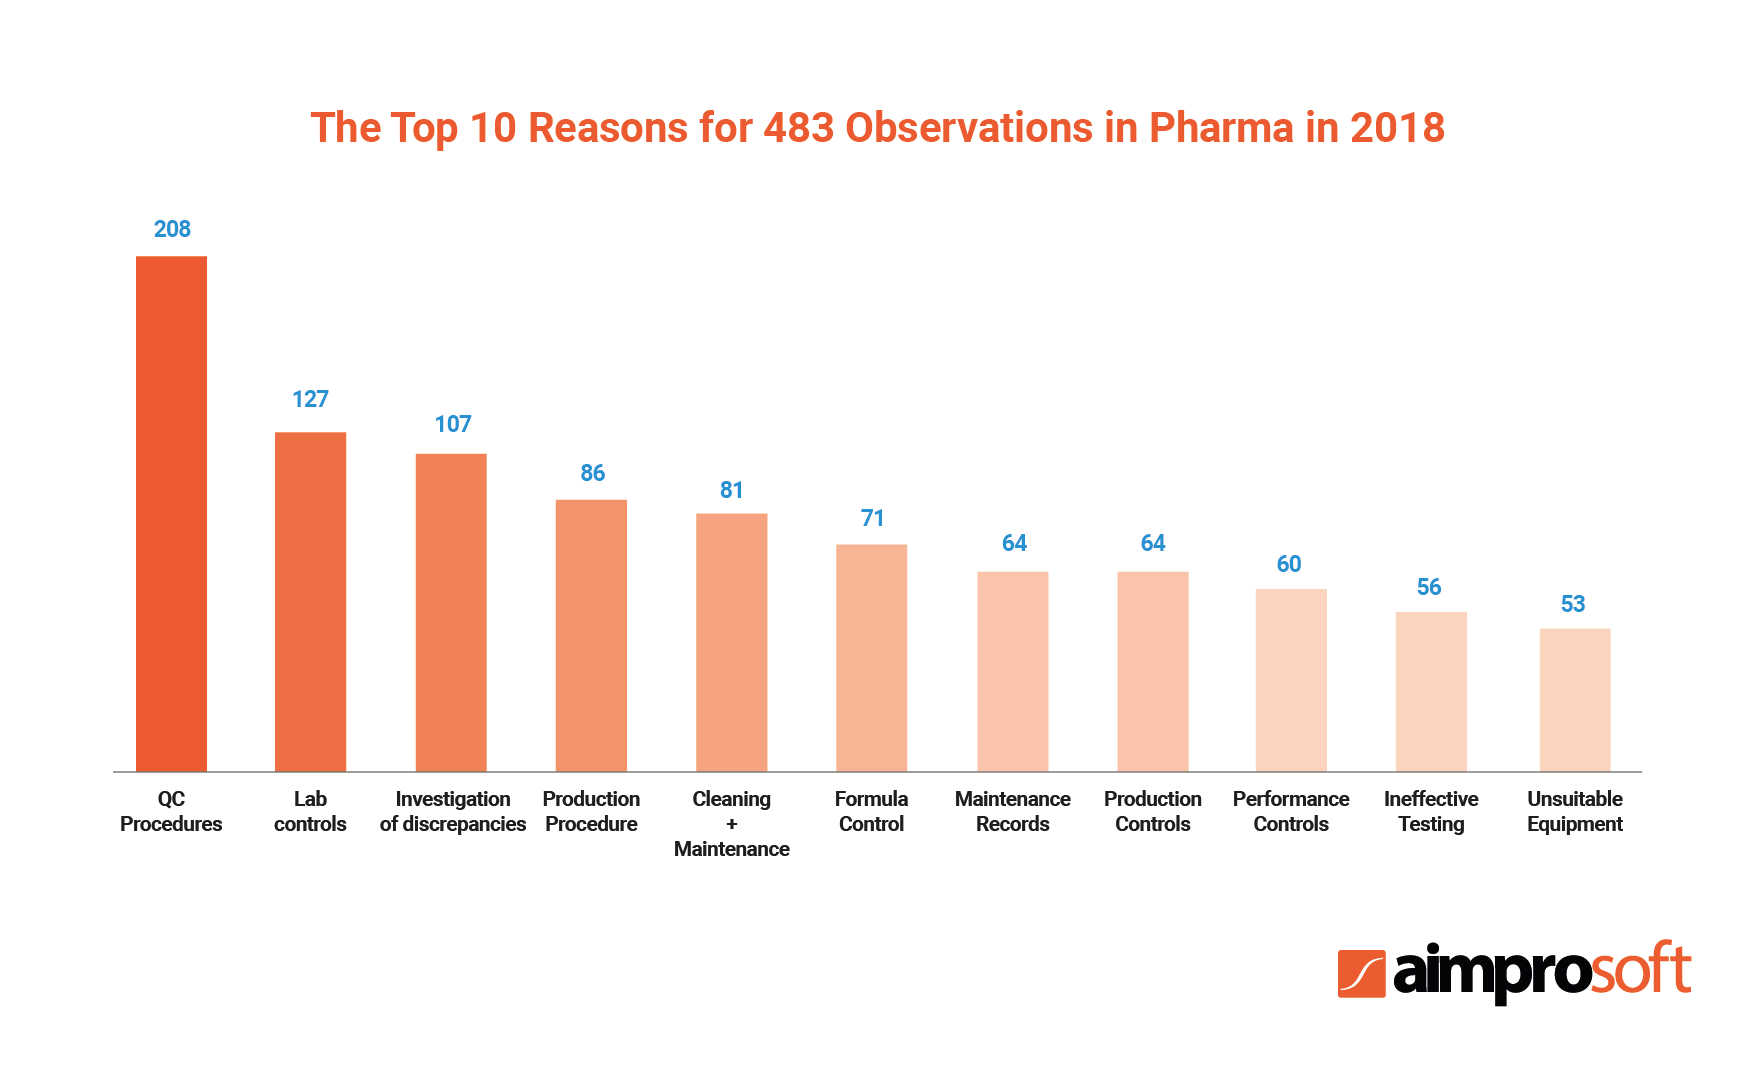 The top 10 reasons for 483 observations in the pharmaceutical industry in 2018